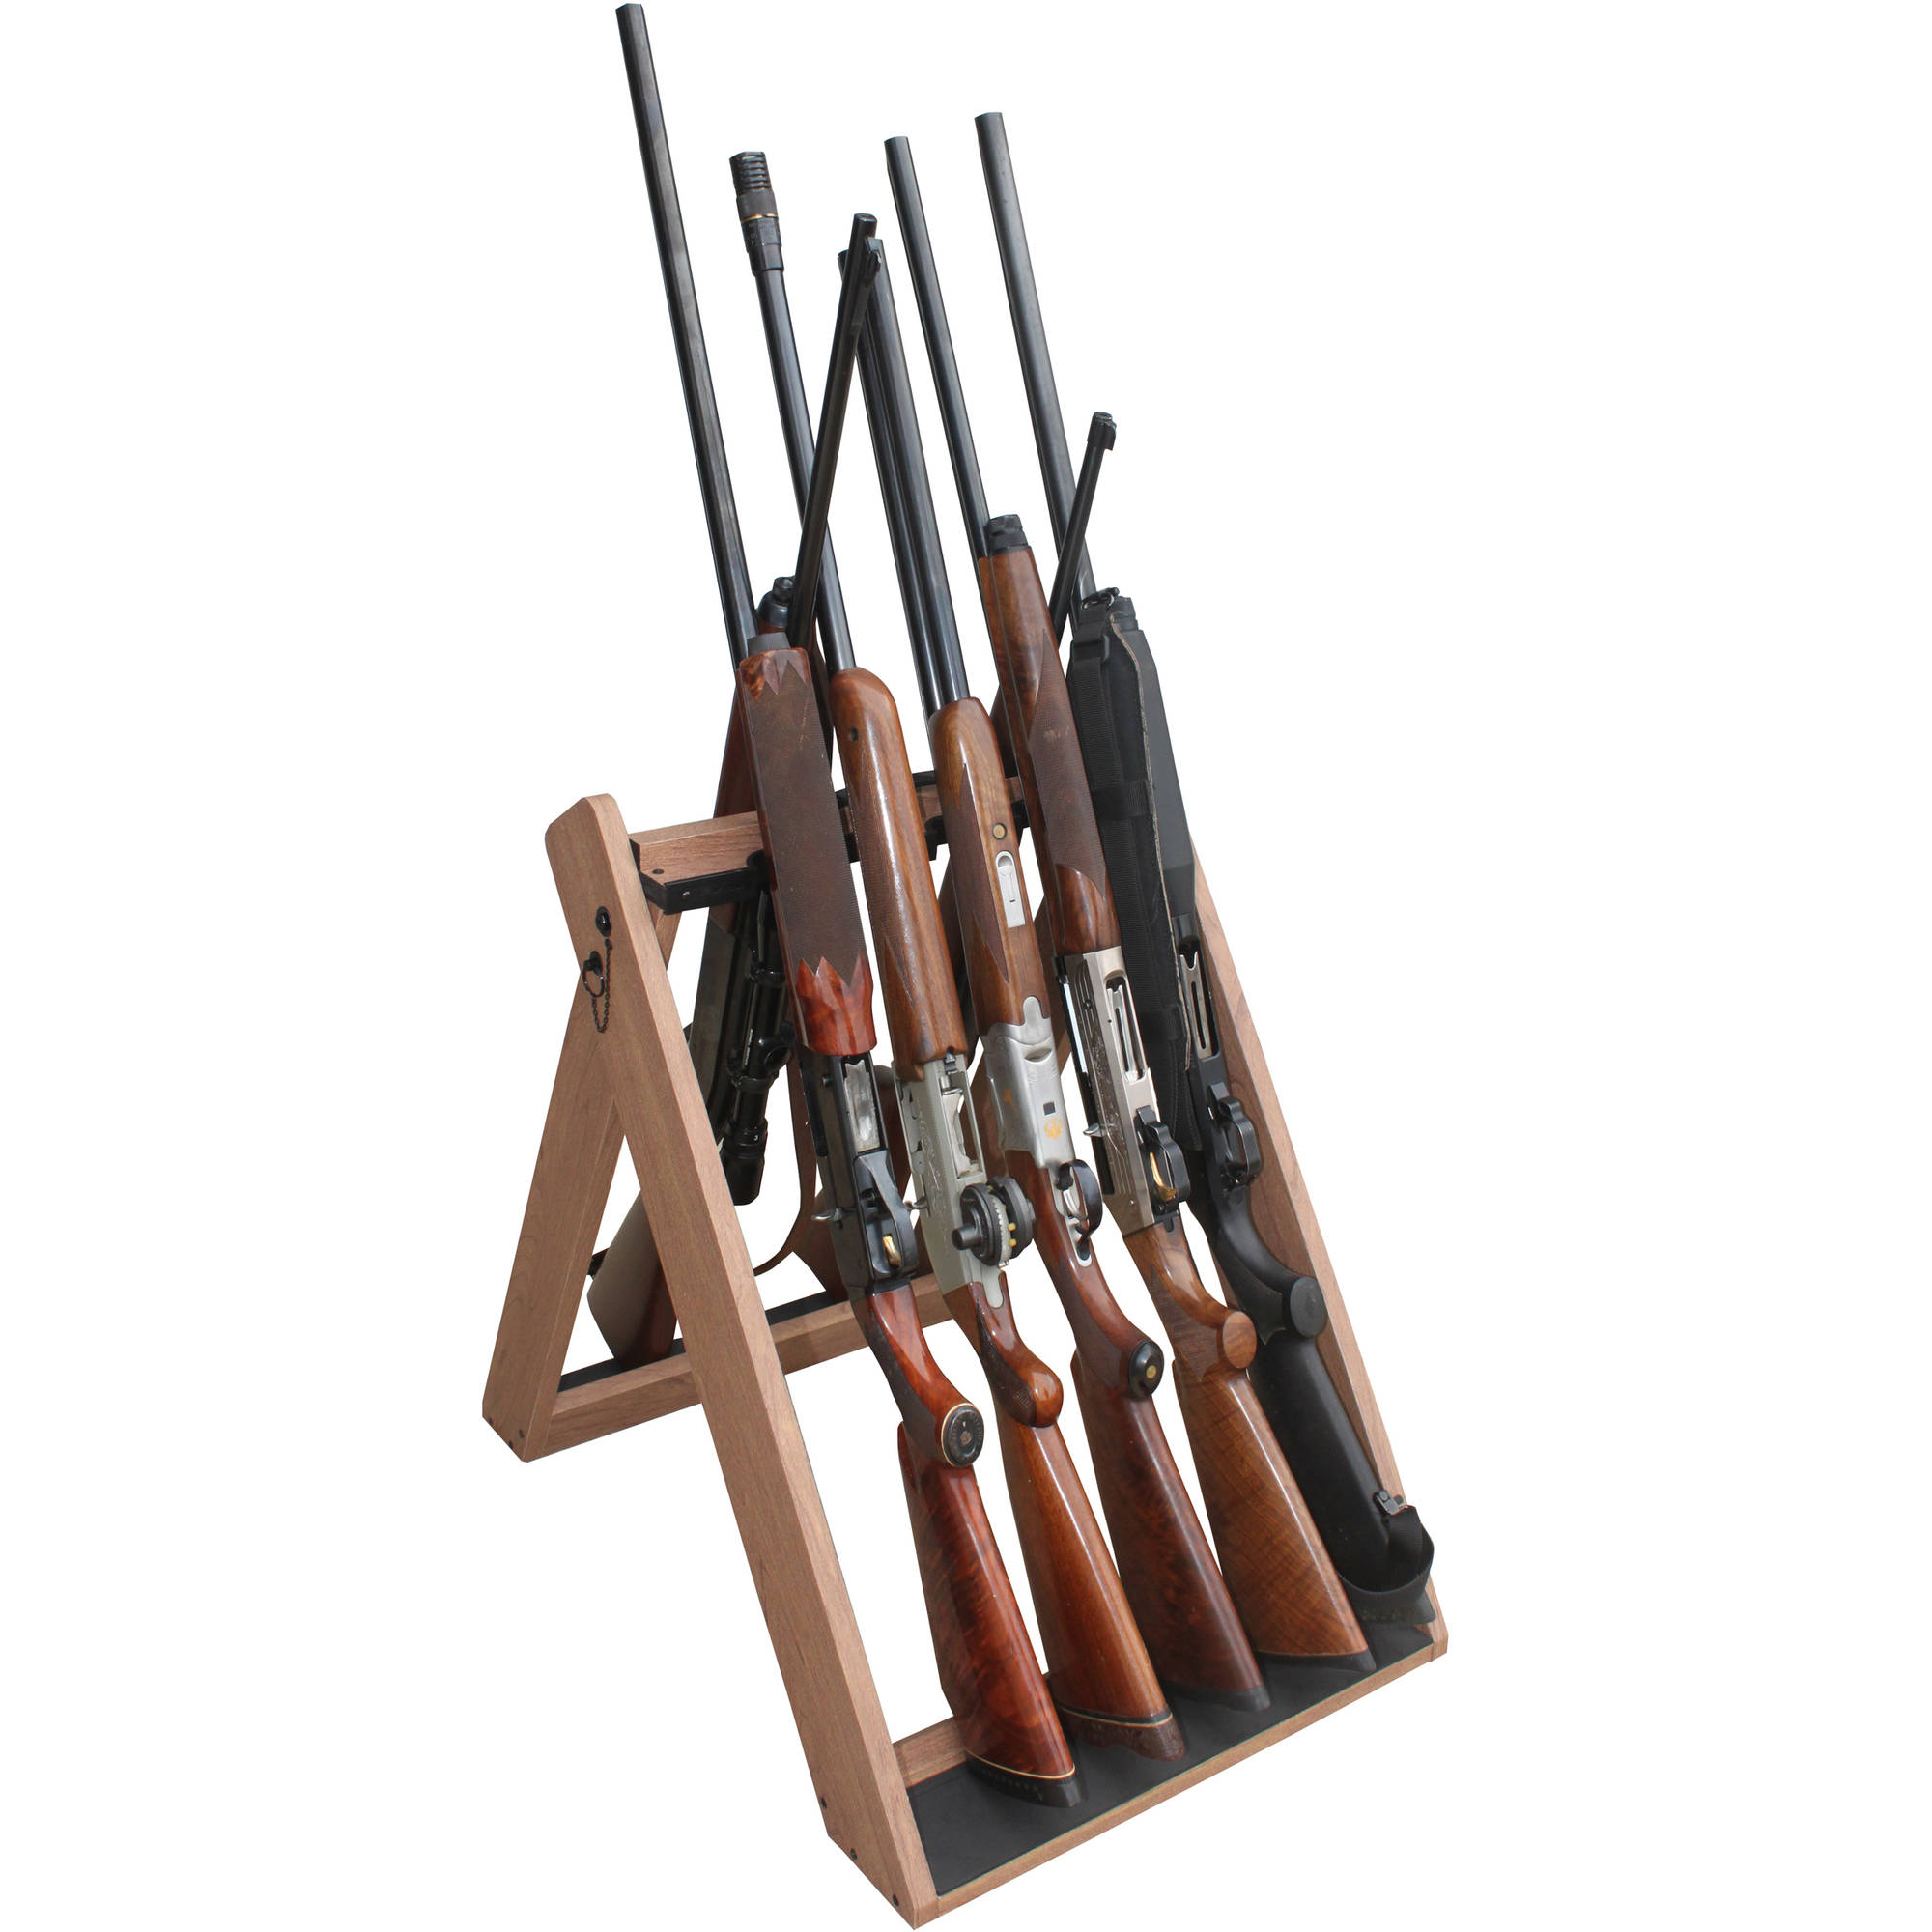 Rush Creek Creations Deer Camp Portable 10 Gun Folding Storage Rack